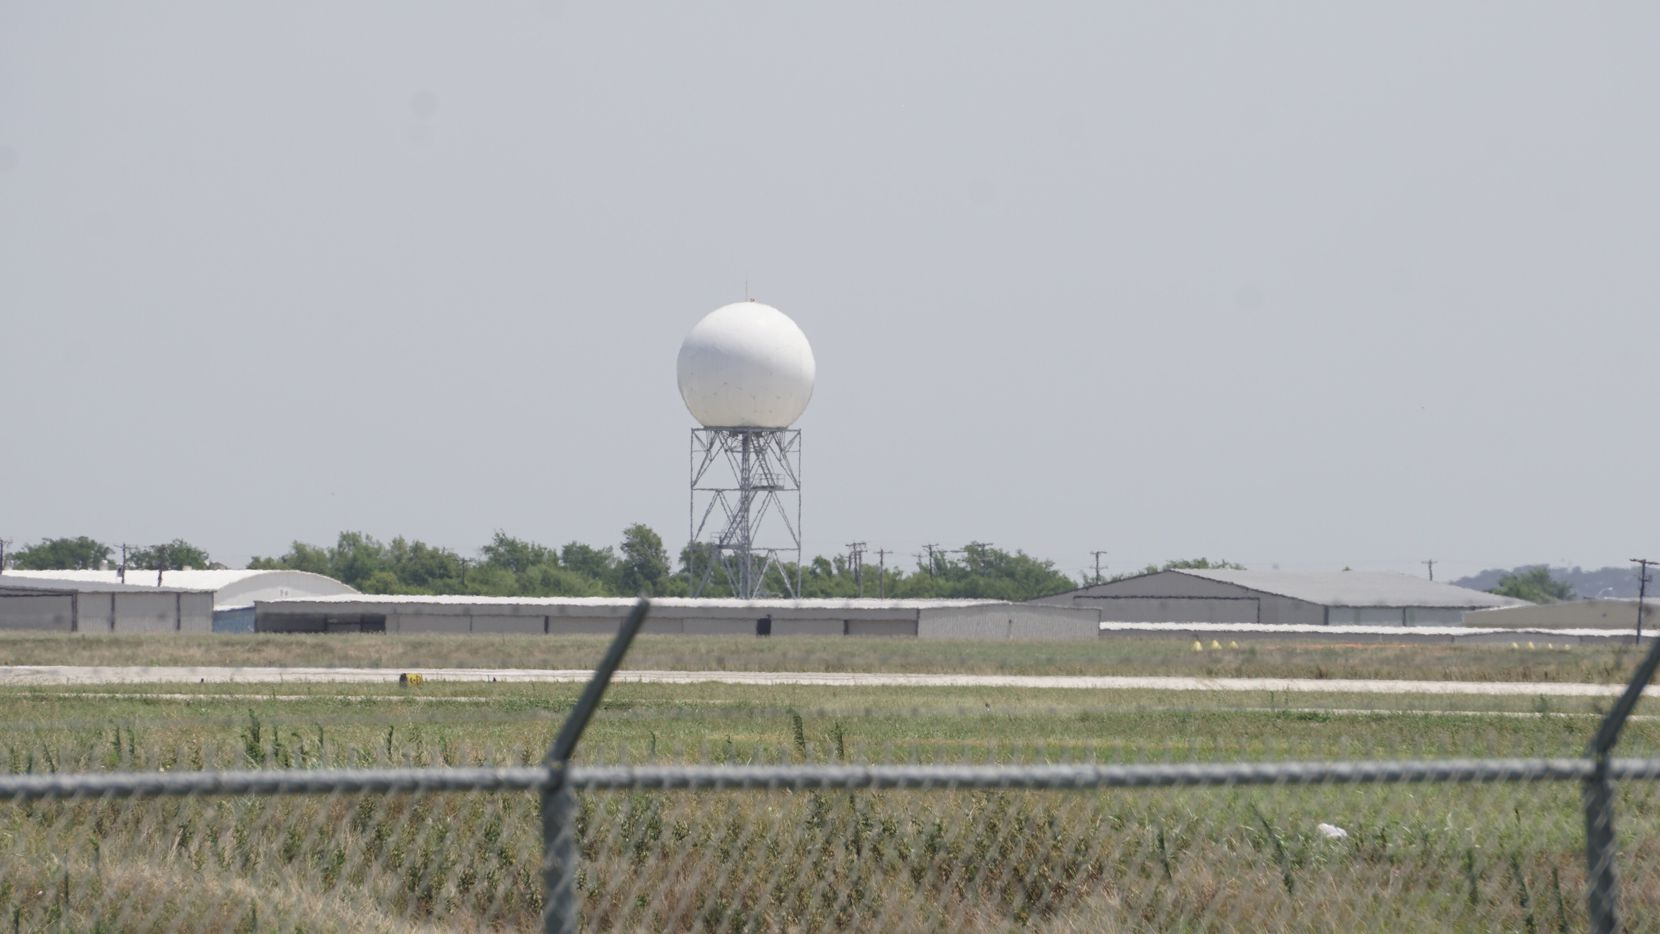 National Weather Service Doppler Radar at Spinks Airport in Burleson, TX on Monday July 9, 2019. (Lawrence Jenkins/Special Contributor)